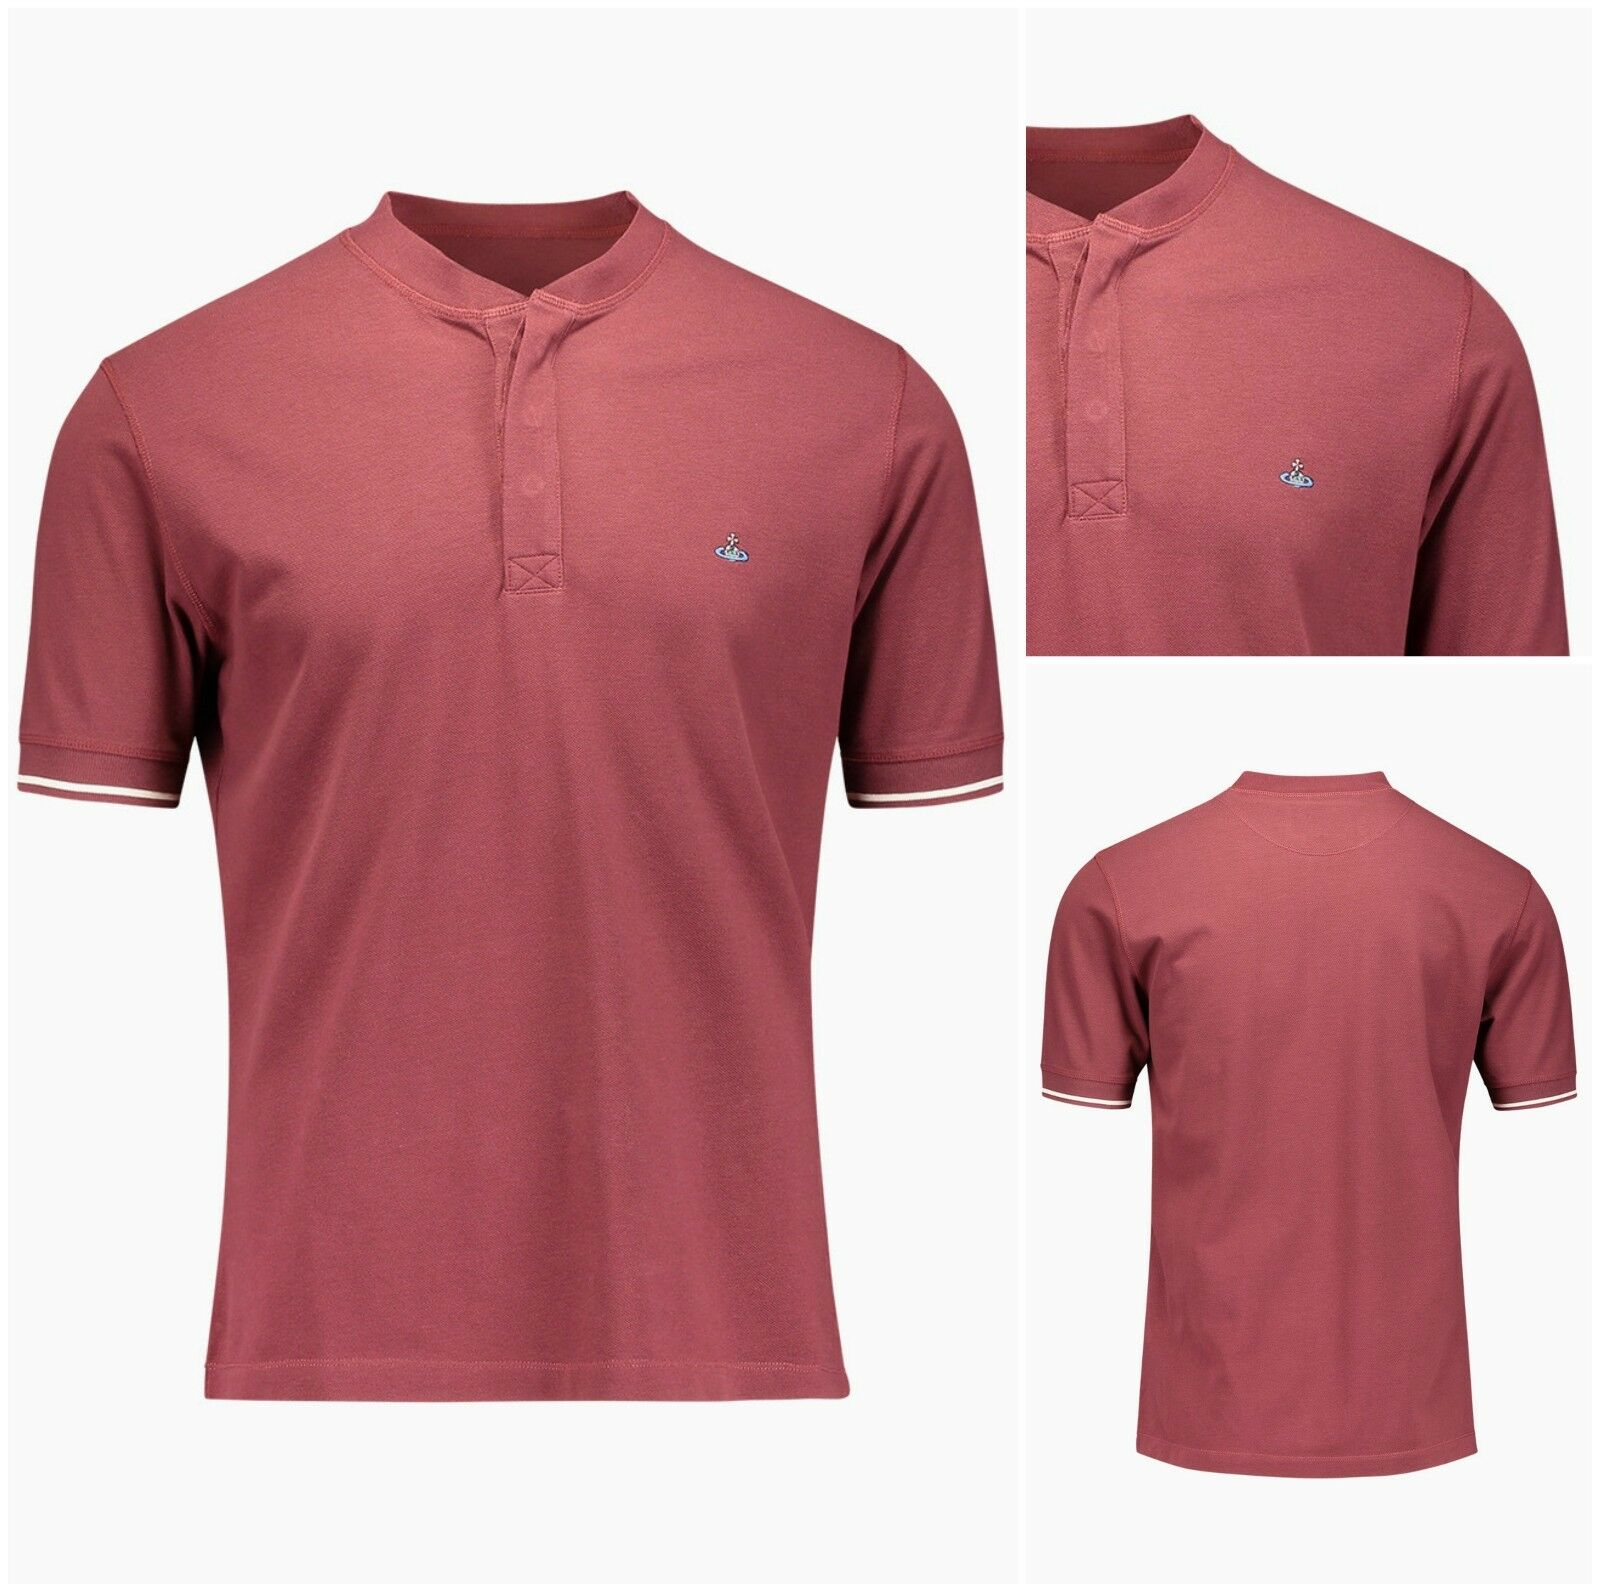 AUTHENTIC VIVIENNE WESTWOOD BURGUNDY FITTED HENLEY POLO SHIRT. XL. 42  CHEST